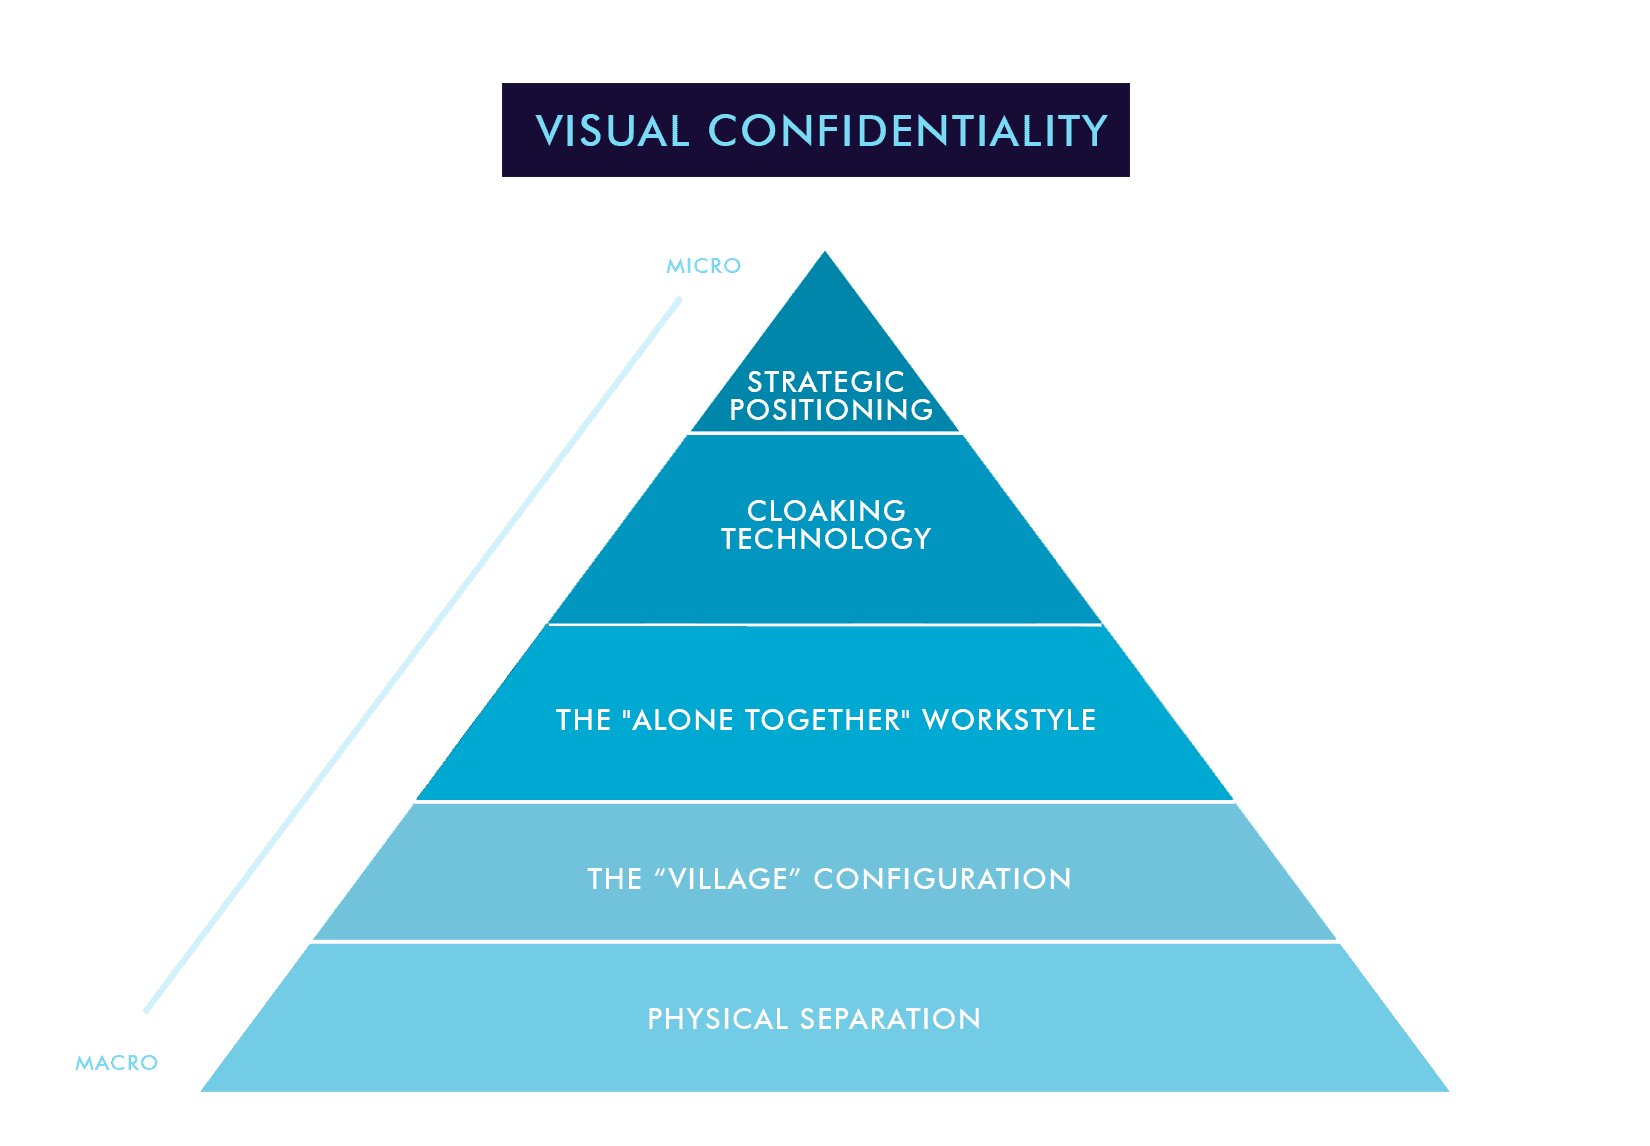 visual confidentiality